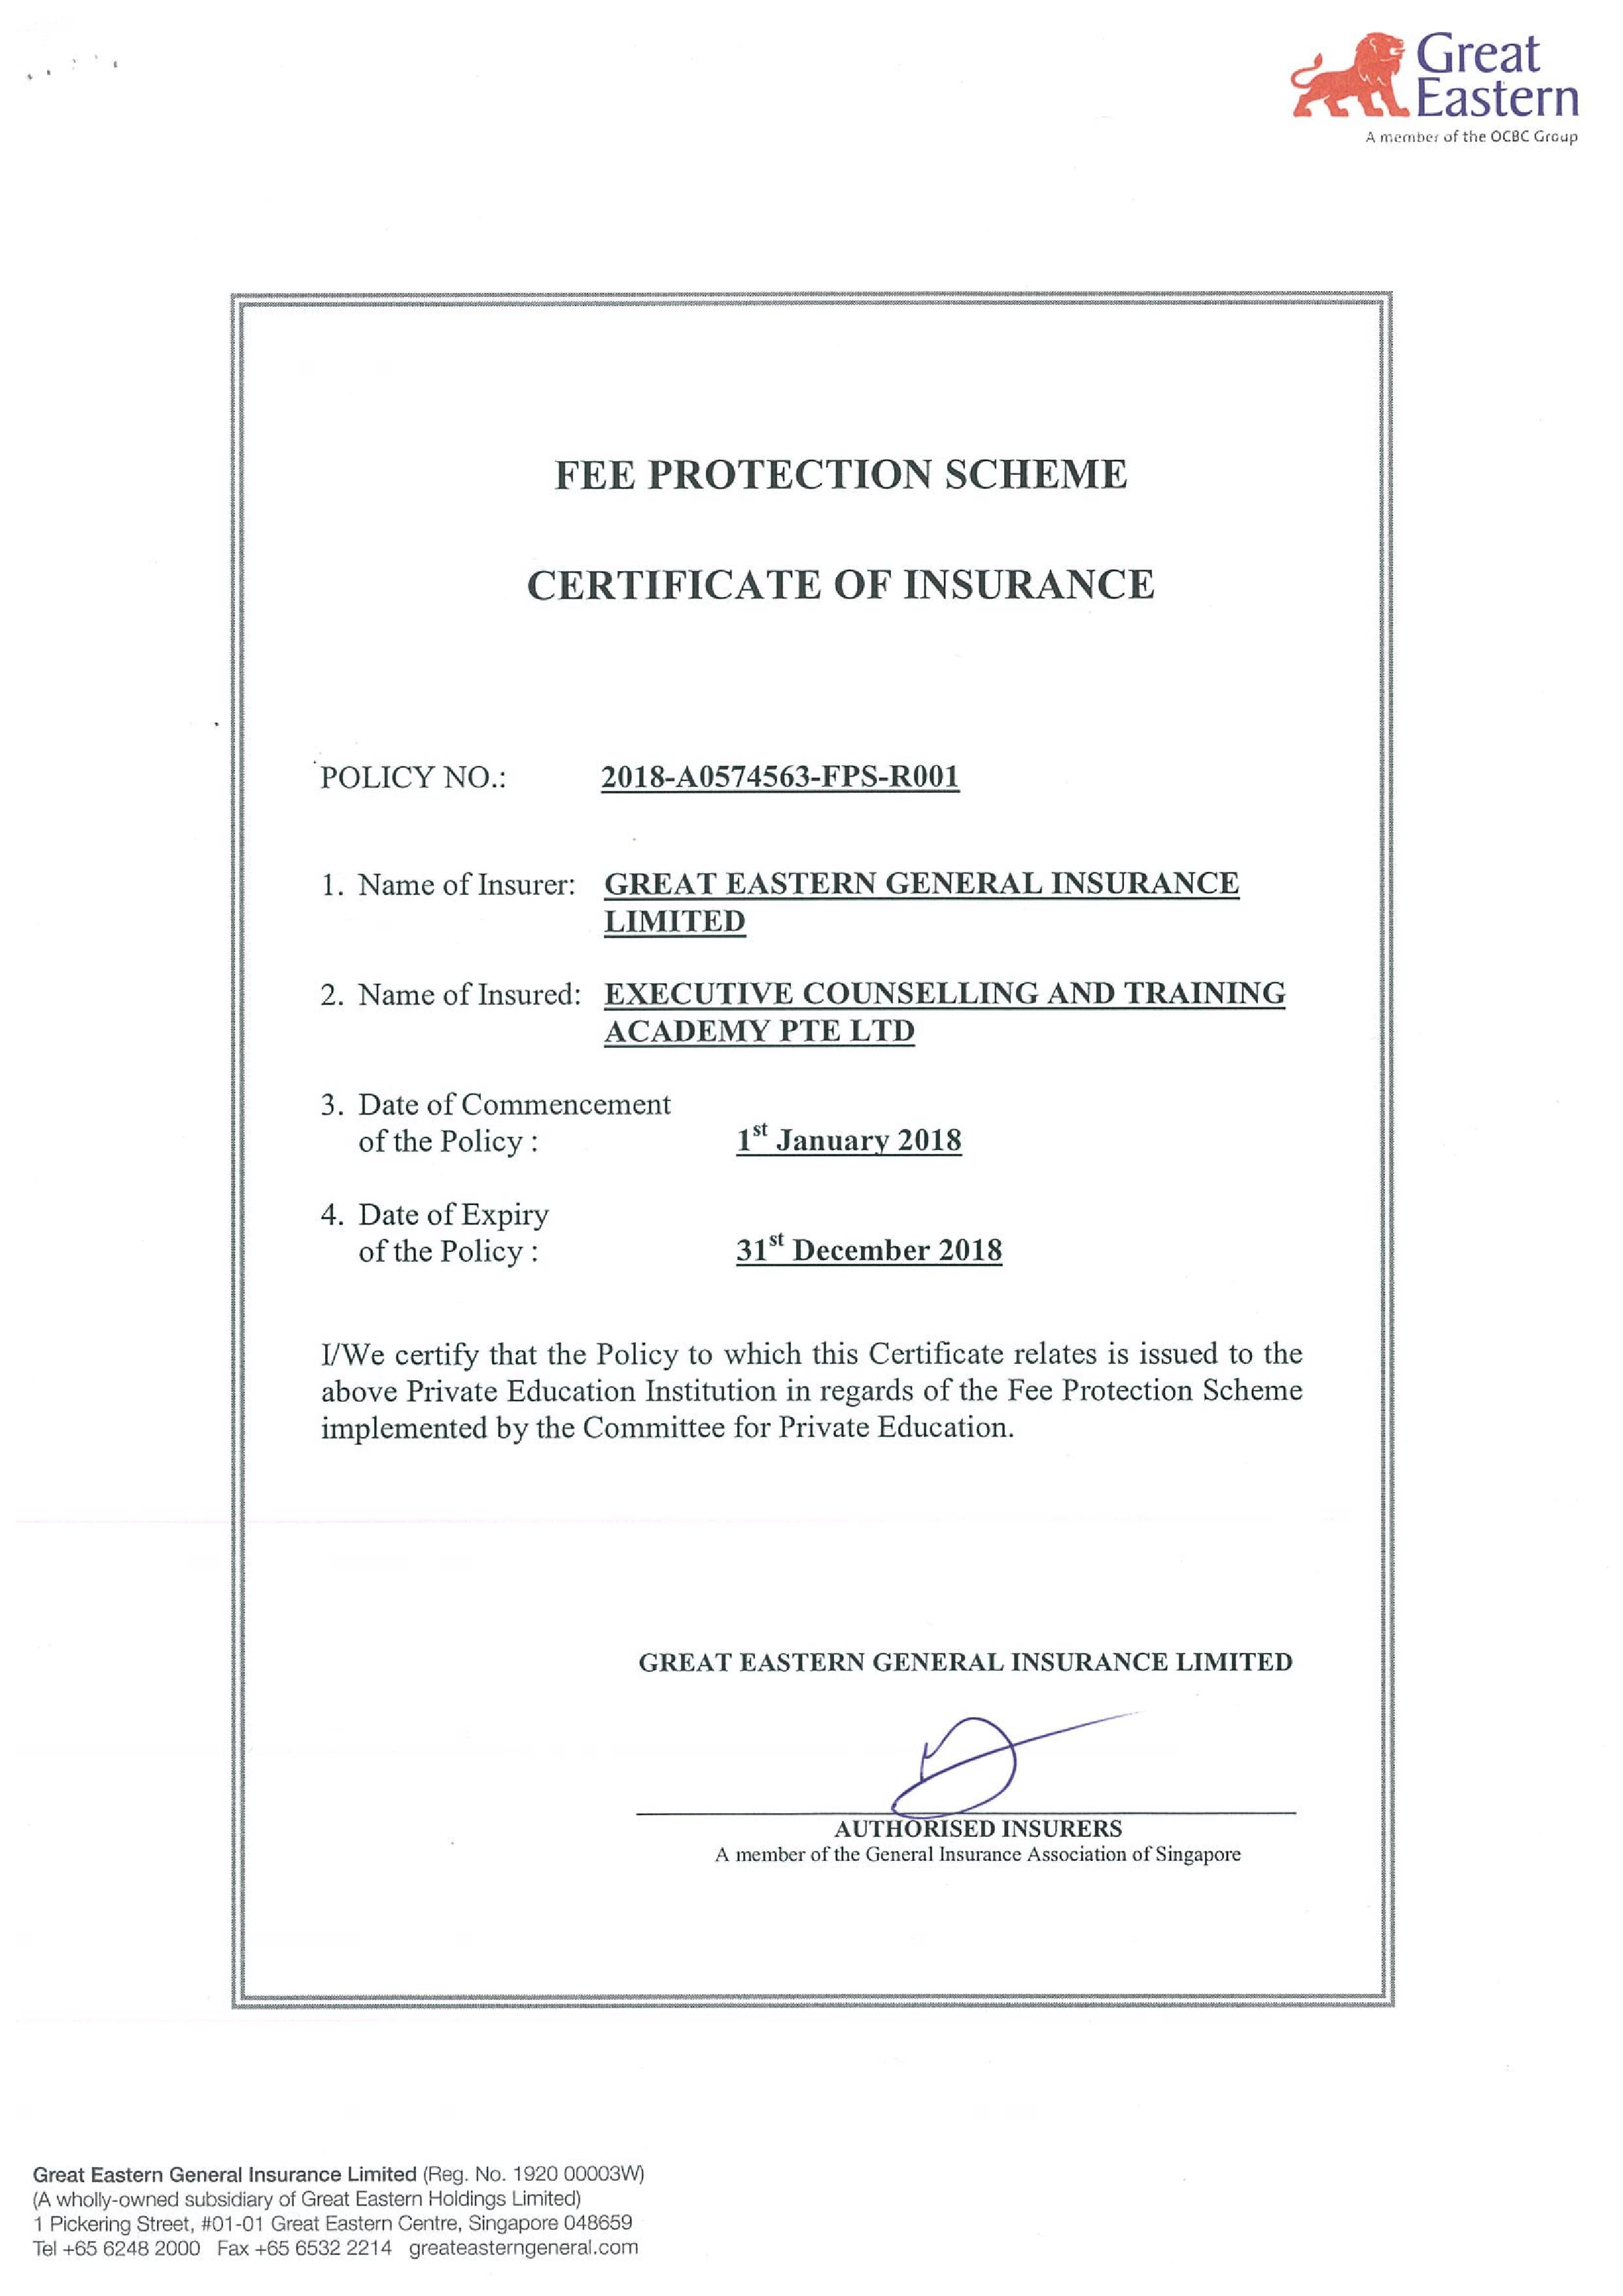 Fee Protection Scheme Certificate of Insurance